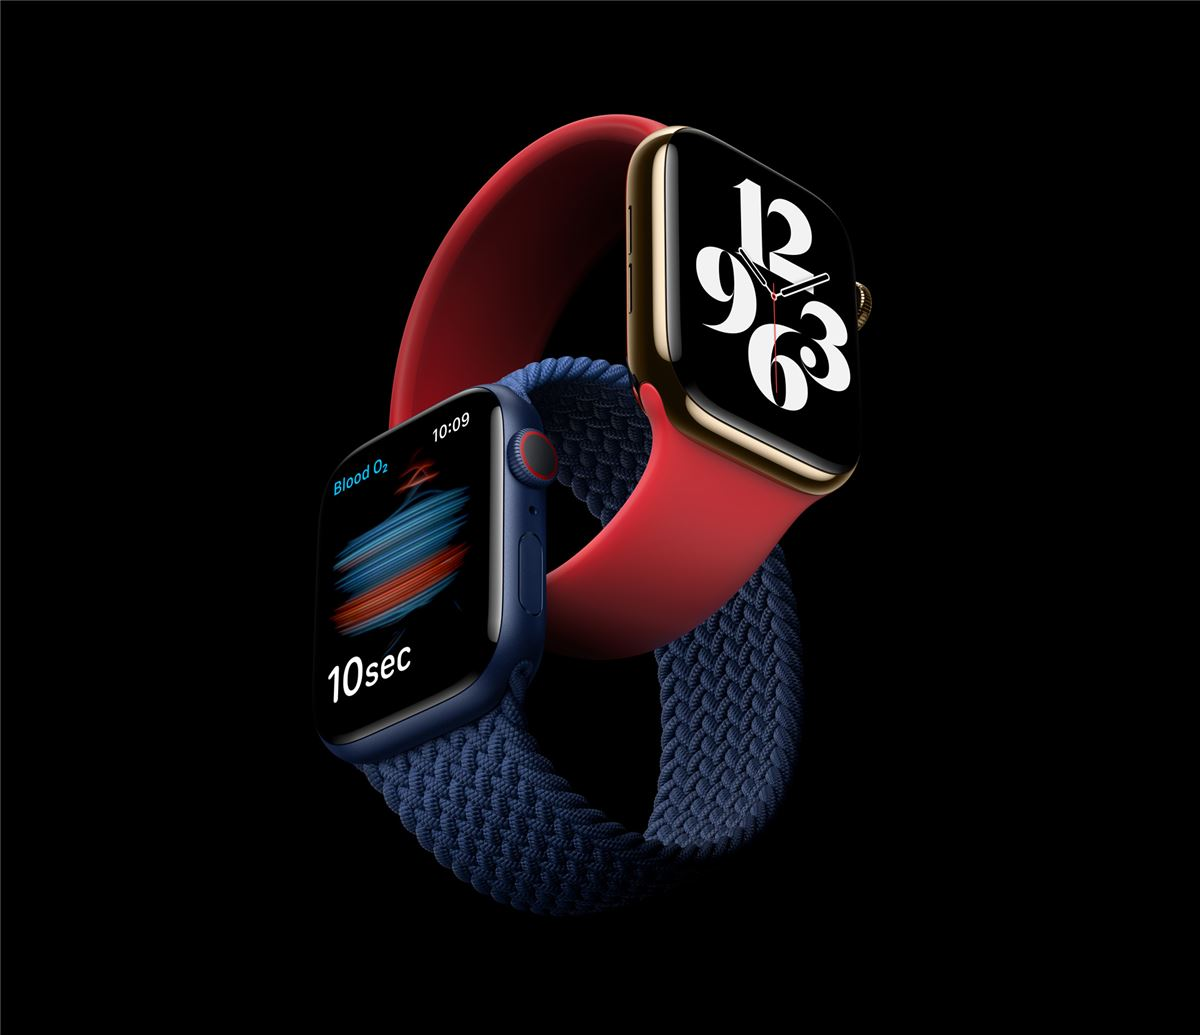 Get Apple Watch Series 6 / SE today - 1